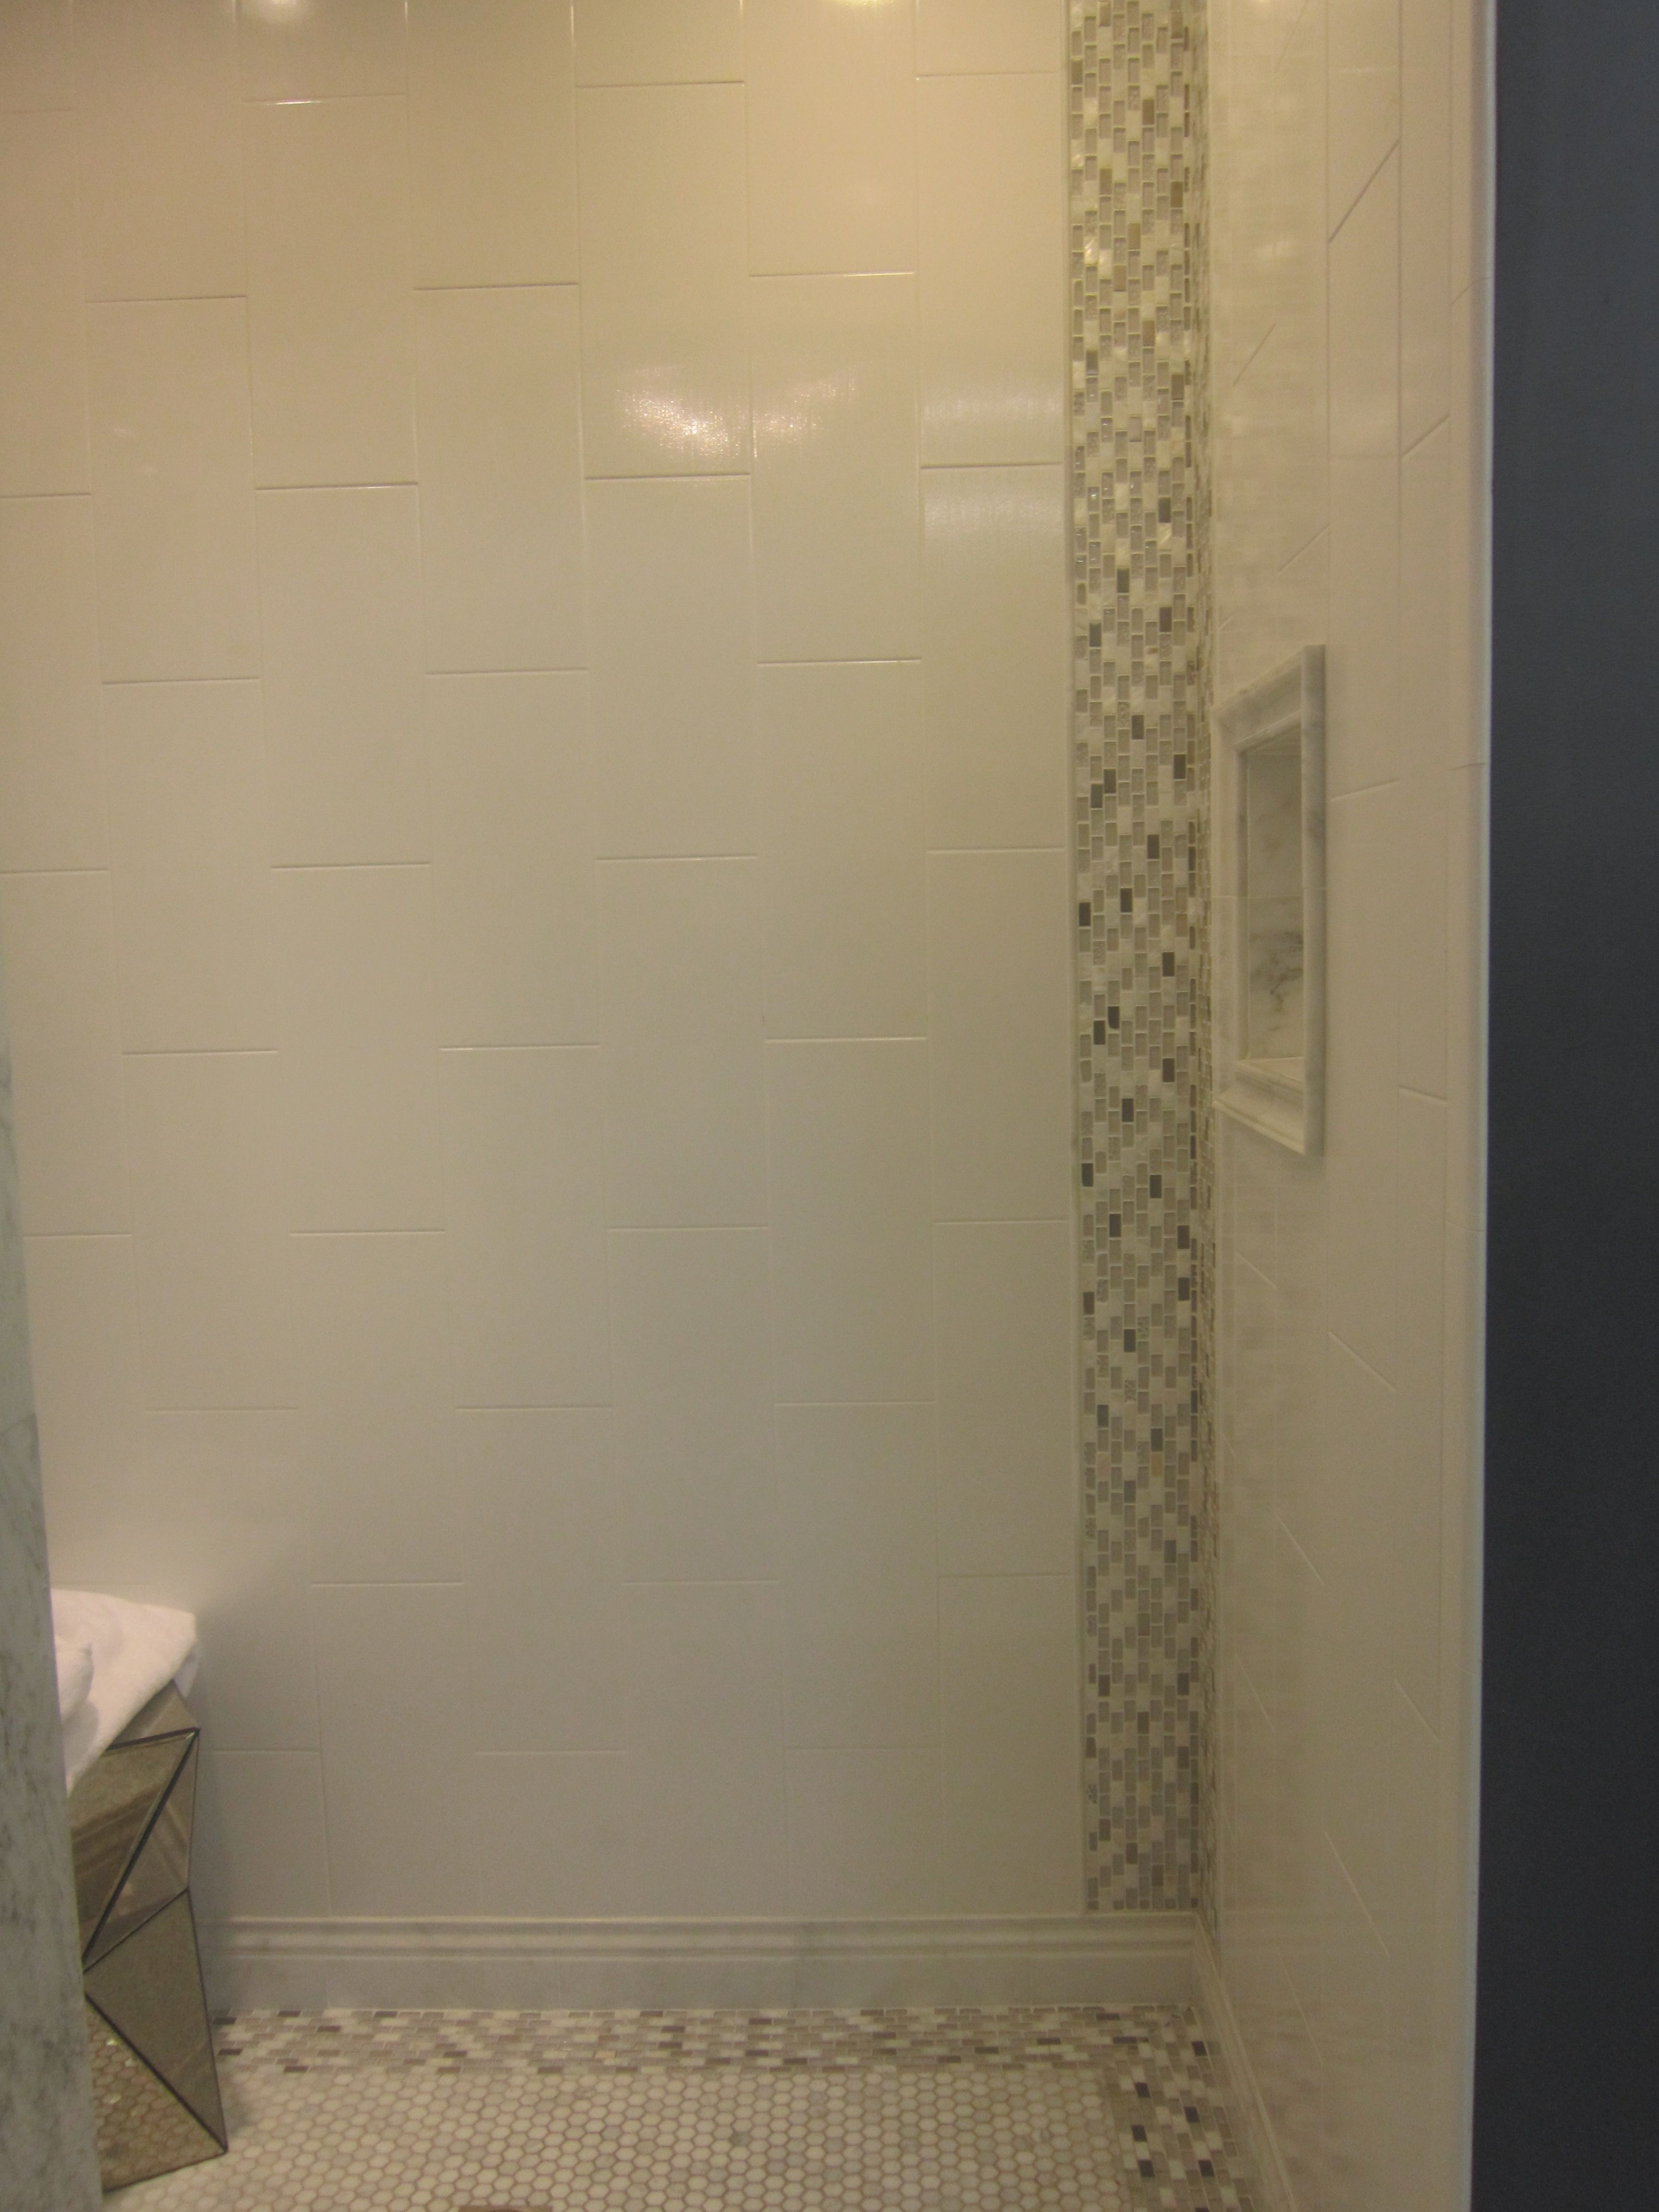 like the tile layout large rectangular tiles in a vertical layout  - like the tile layout large rectangular tiles in a vertical layout likethe accent